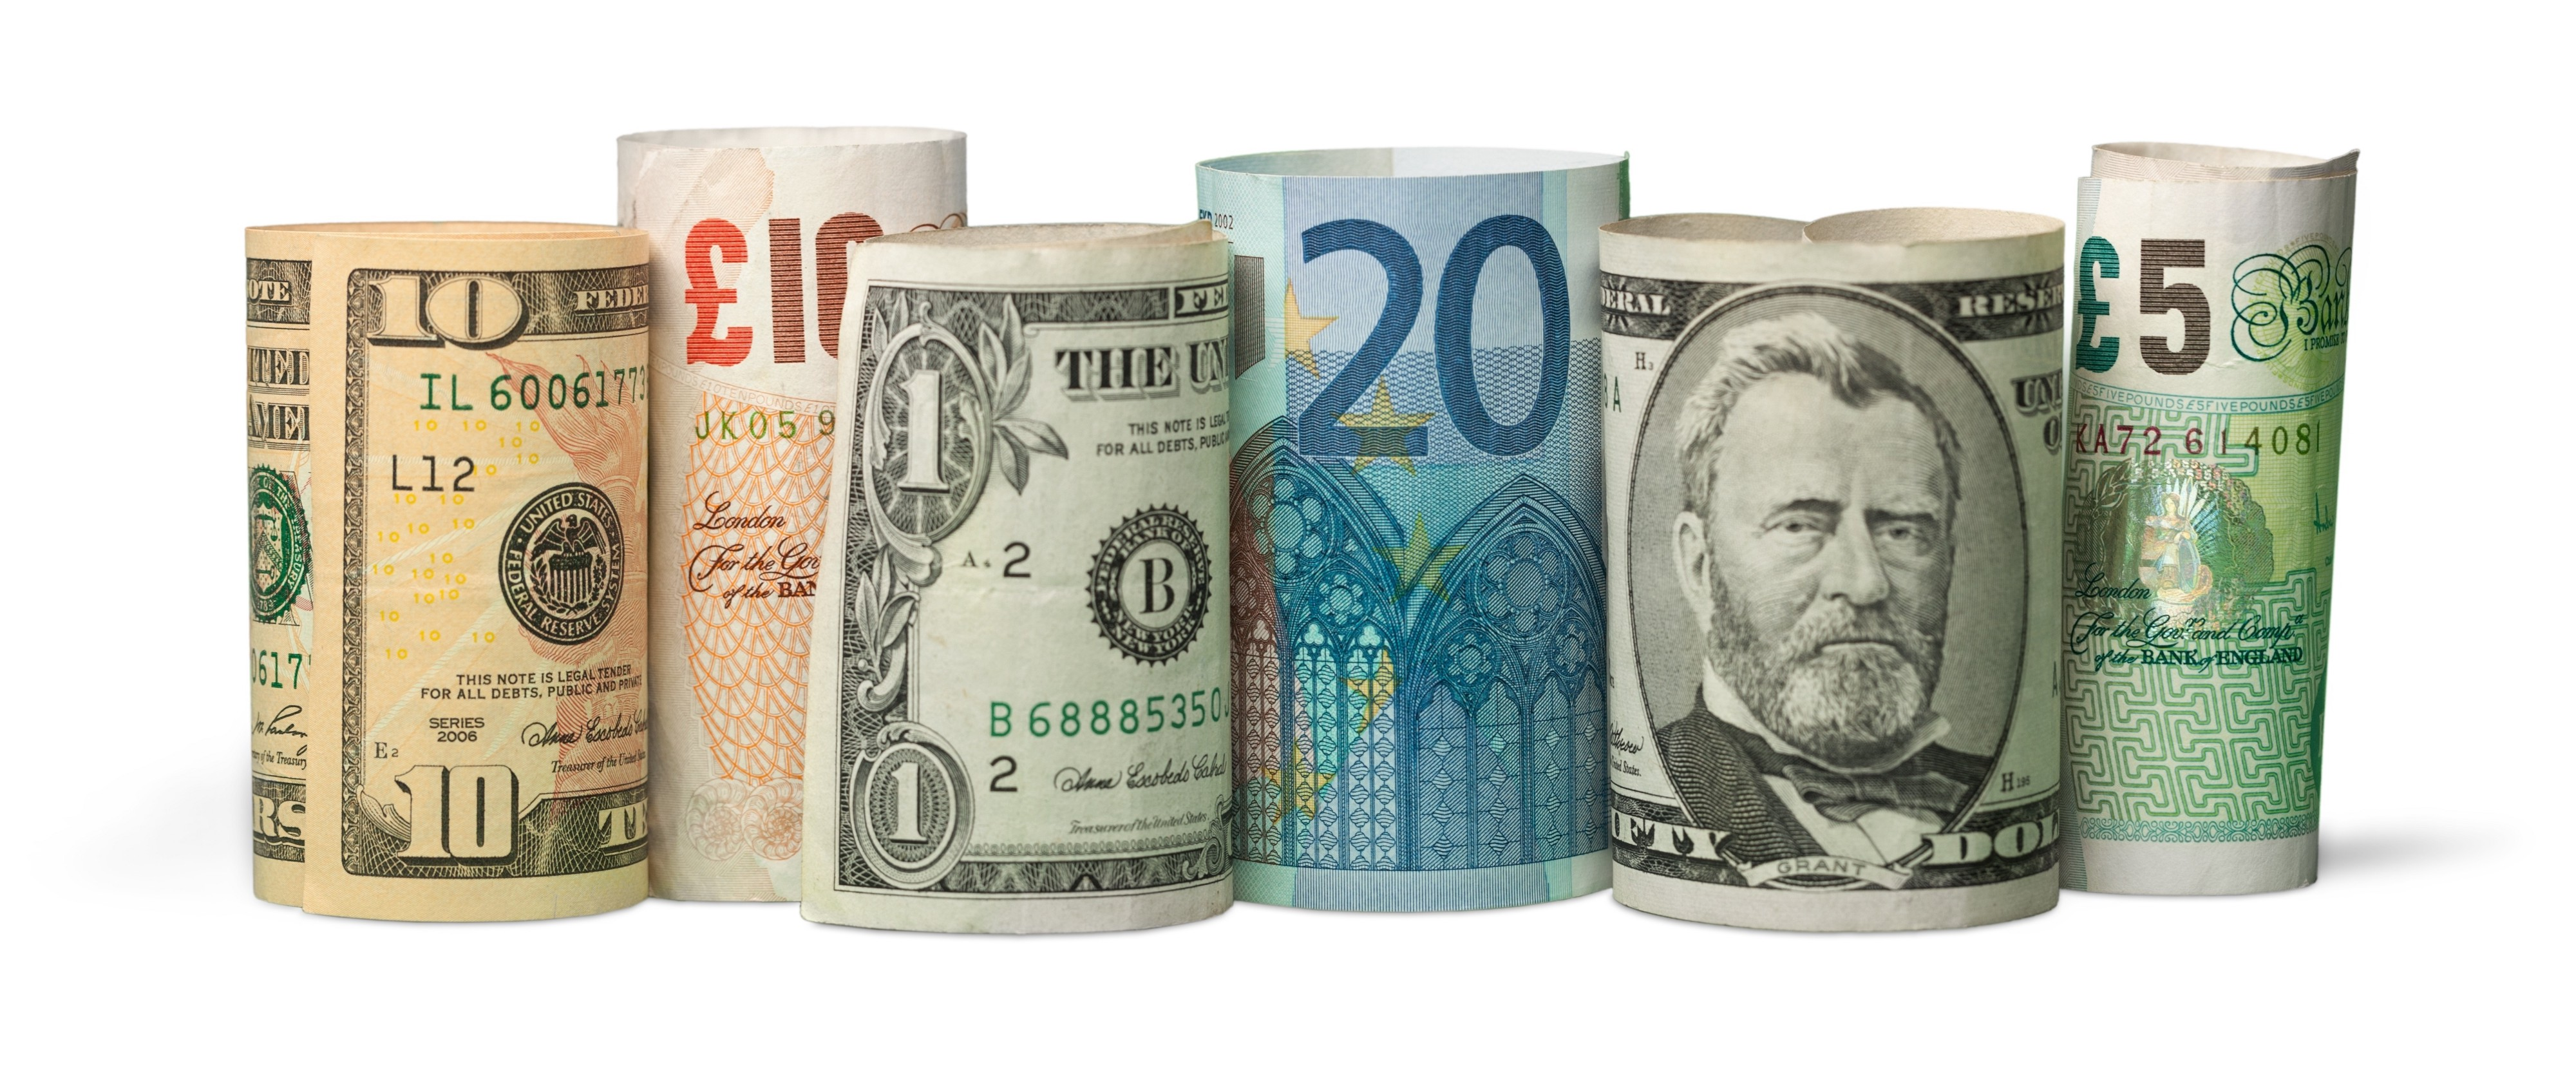 different types of US, UK, and EU paper currency